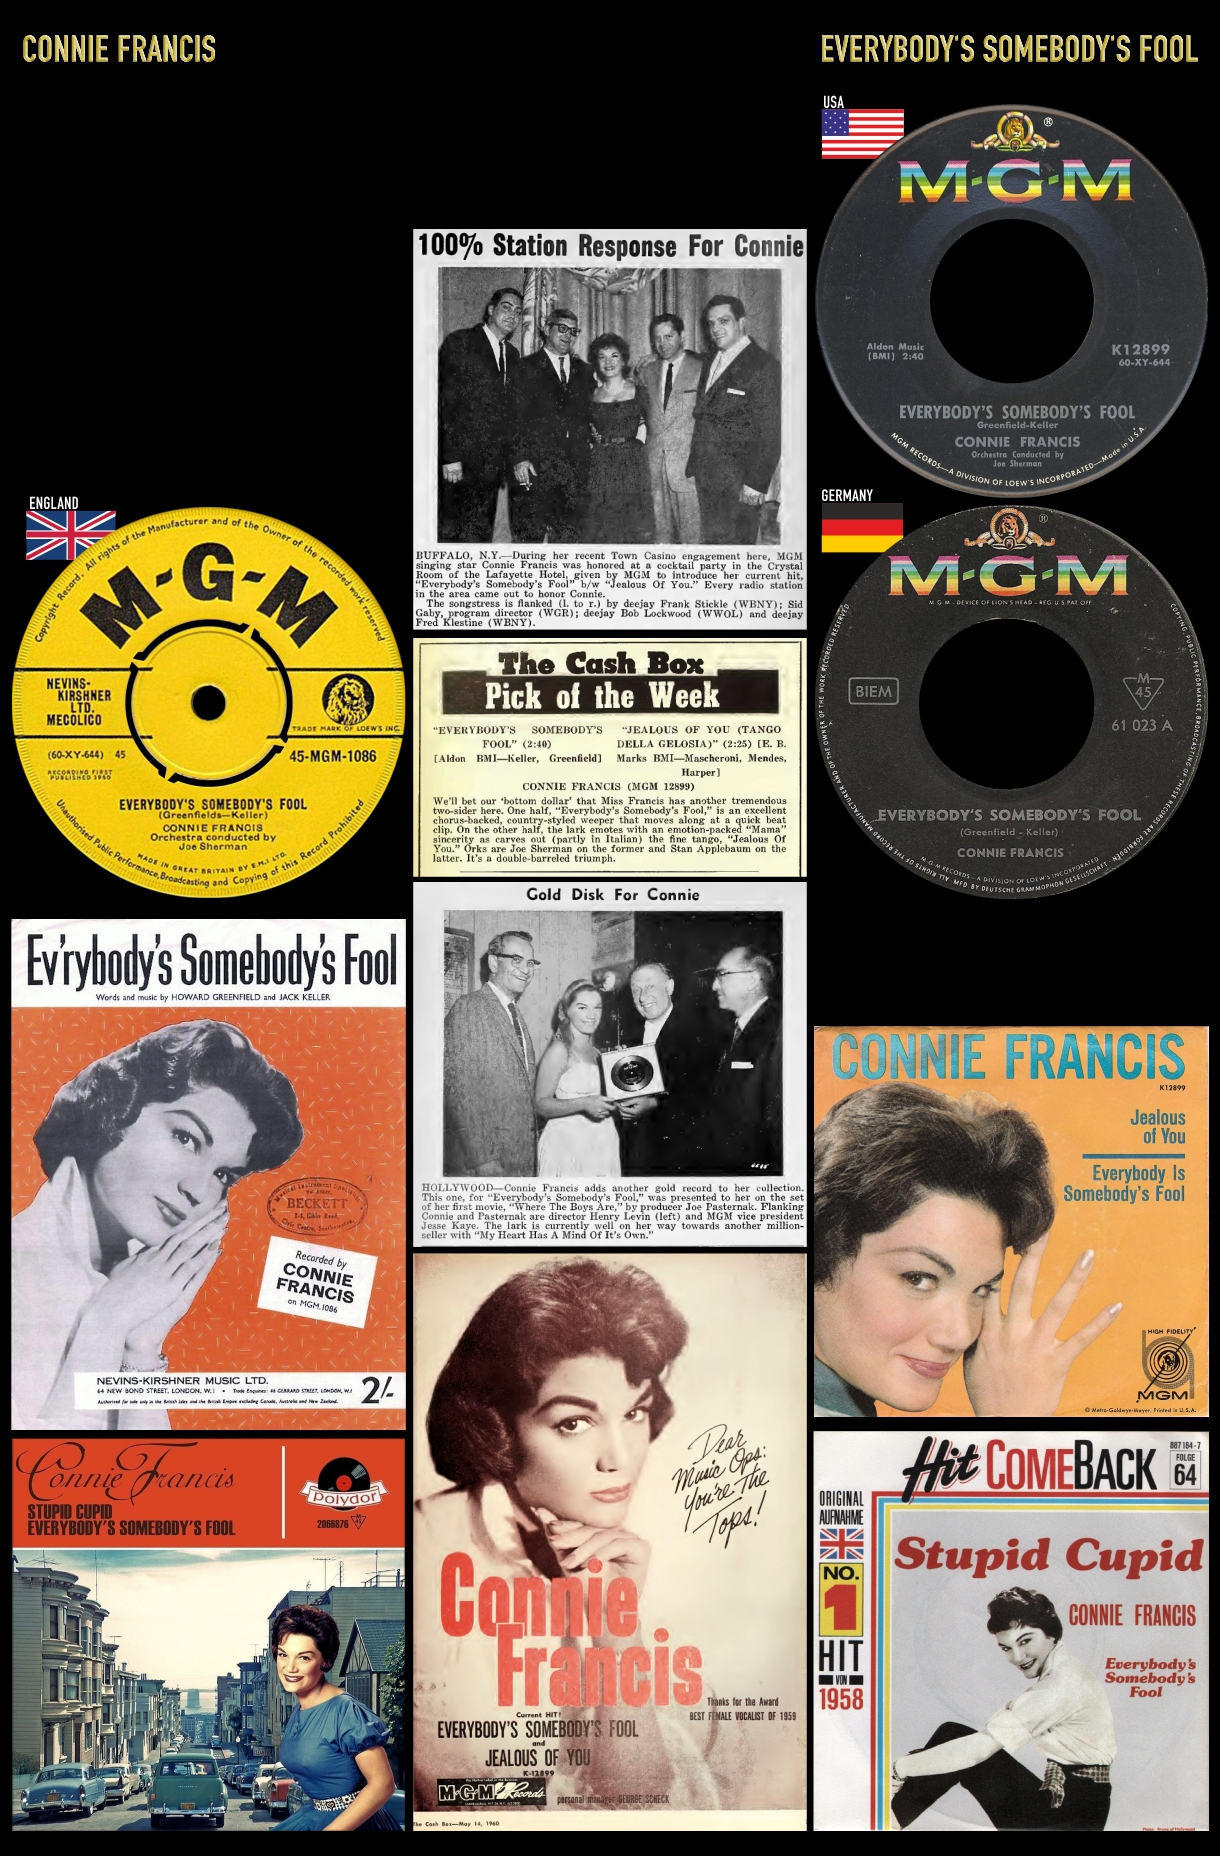 600625_Connie Francis_Everybody's Somebody's Fool